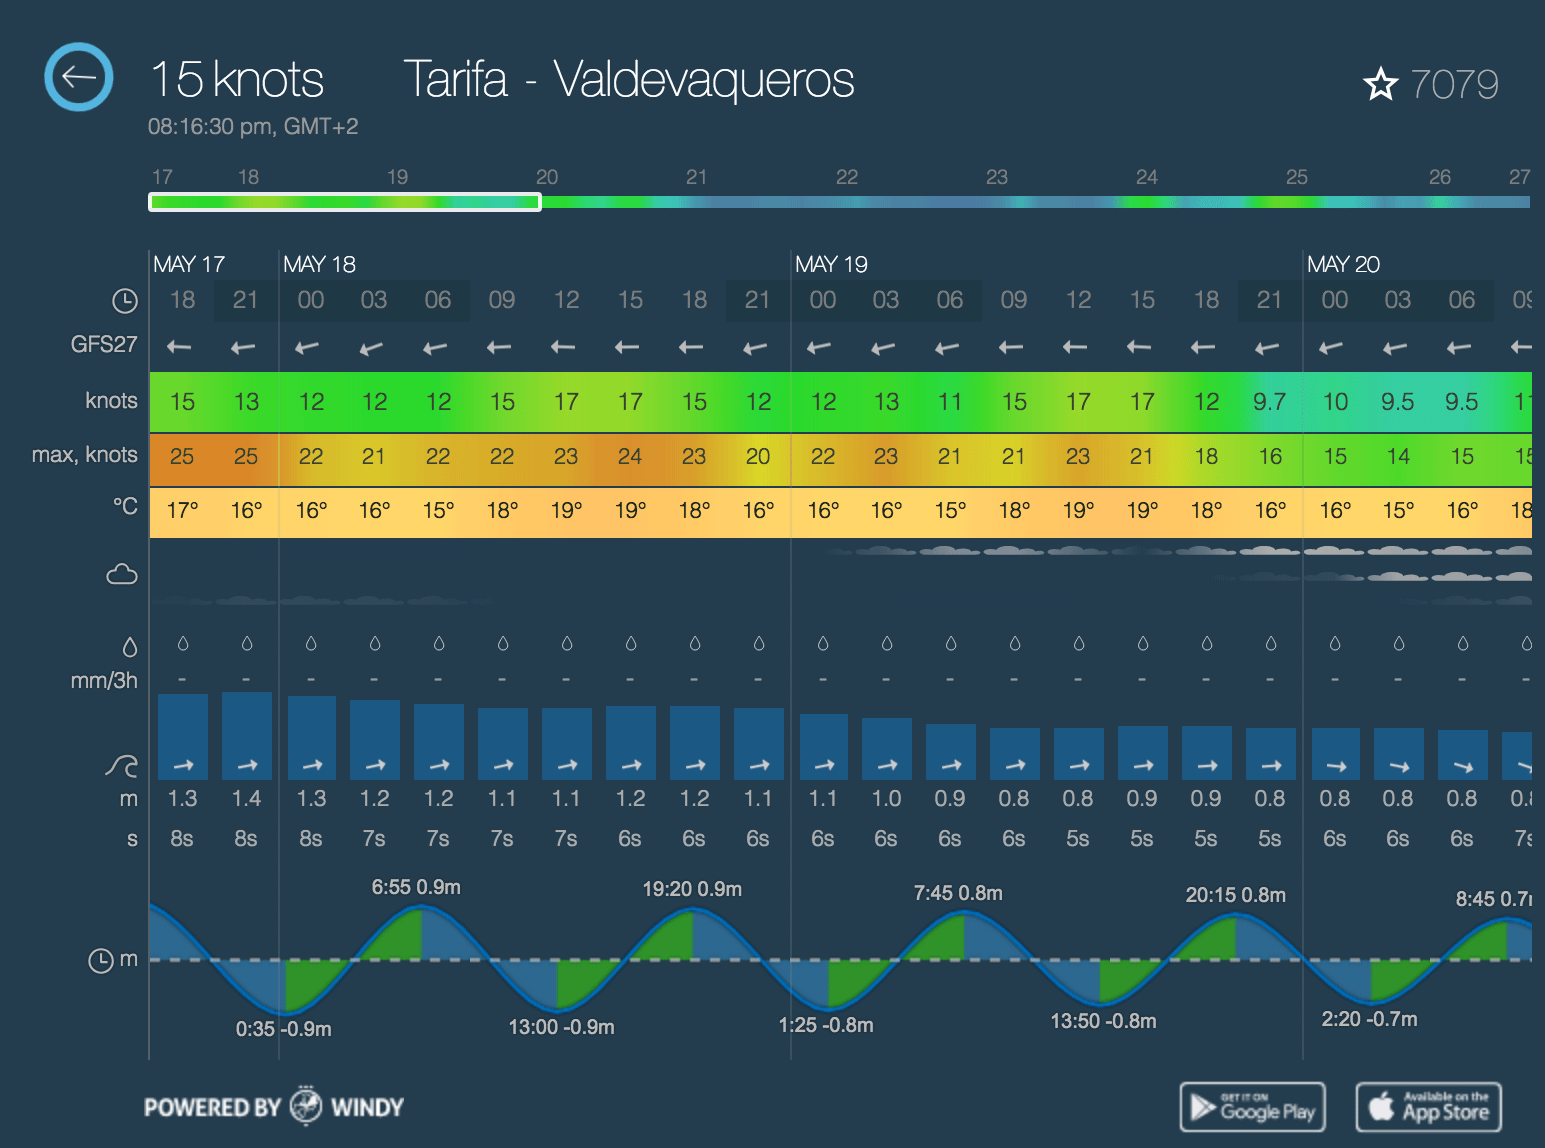 Windy - global wind forecast for the next 240 hours!